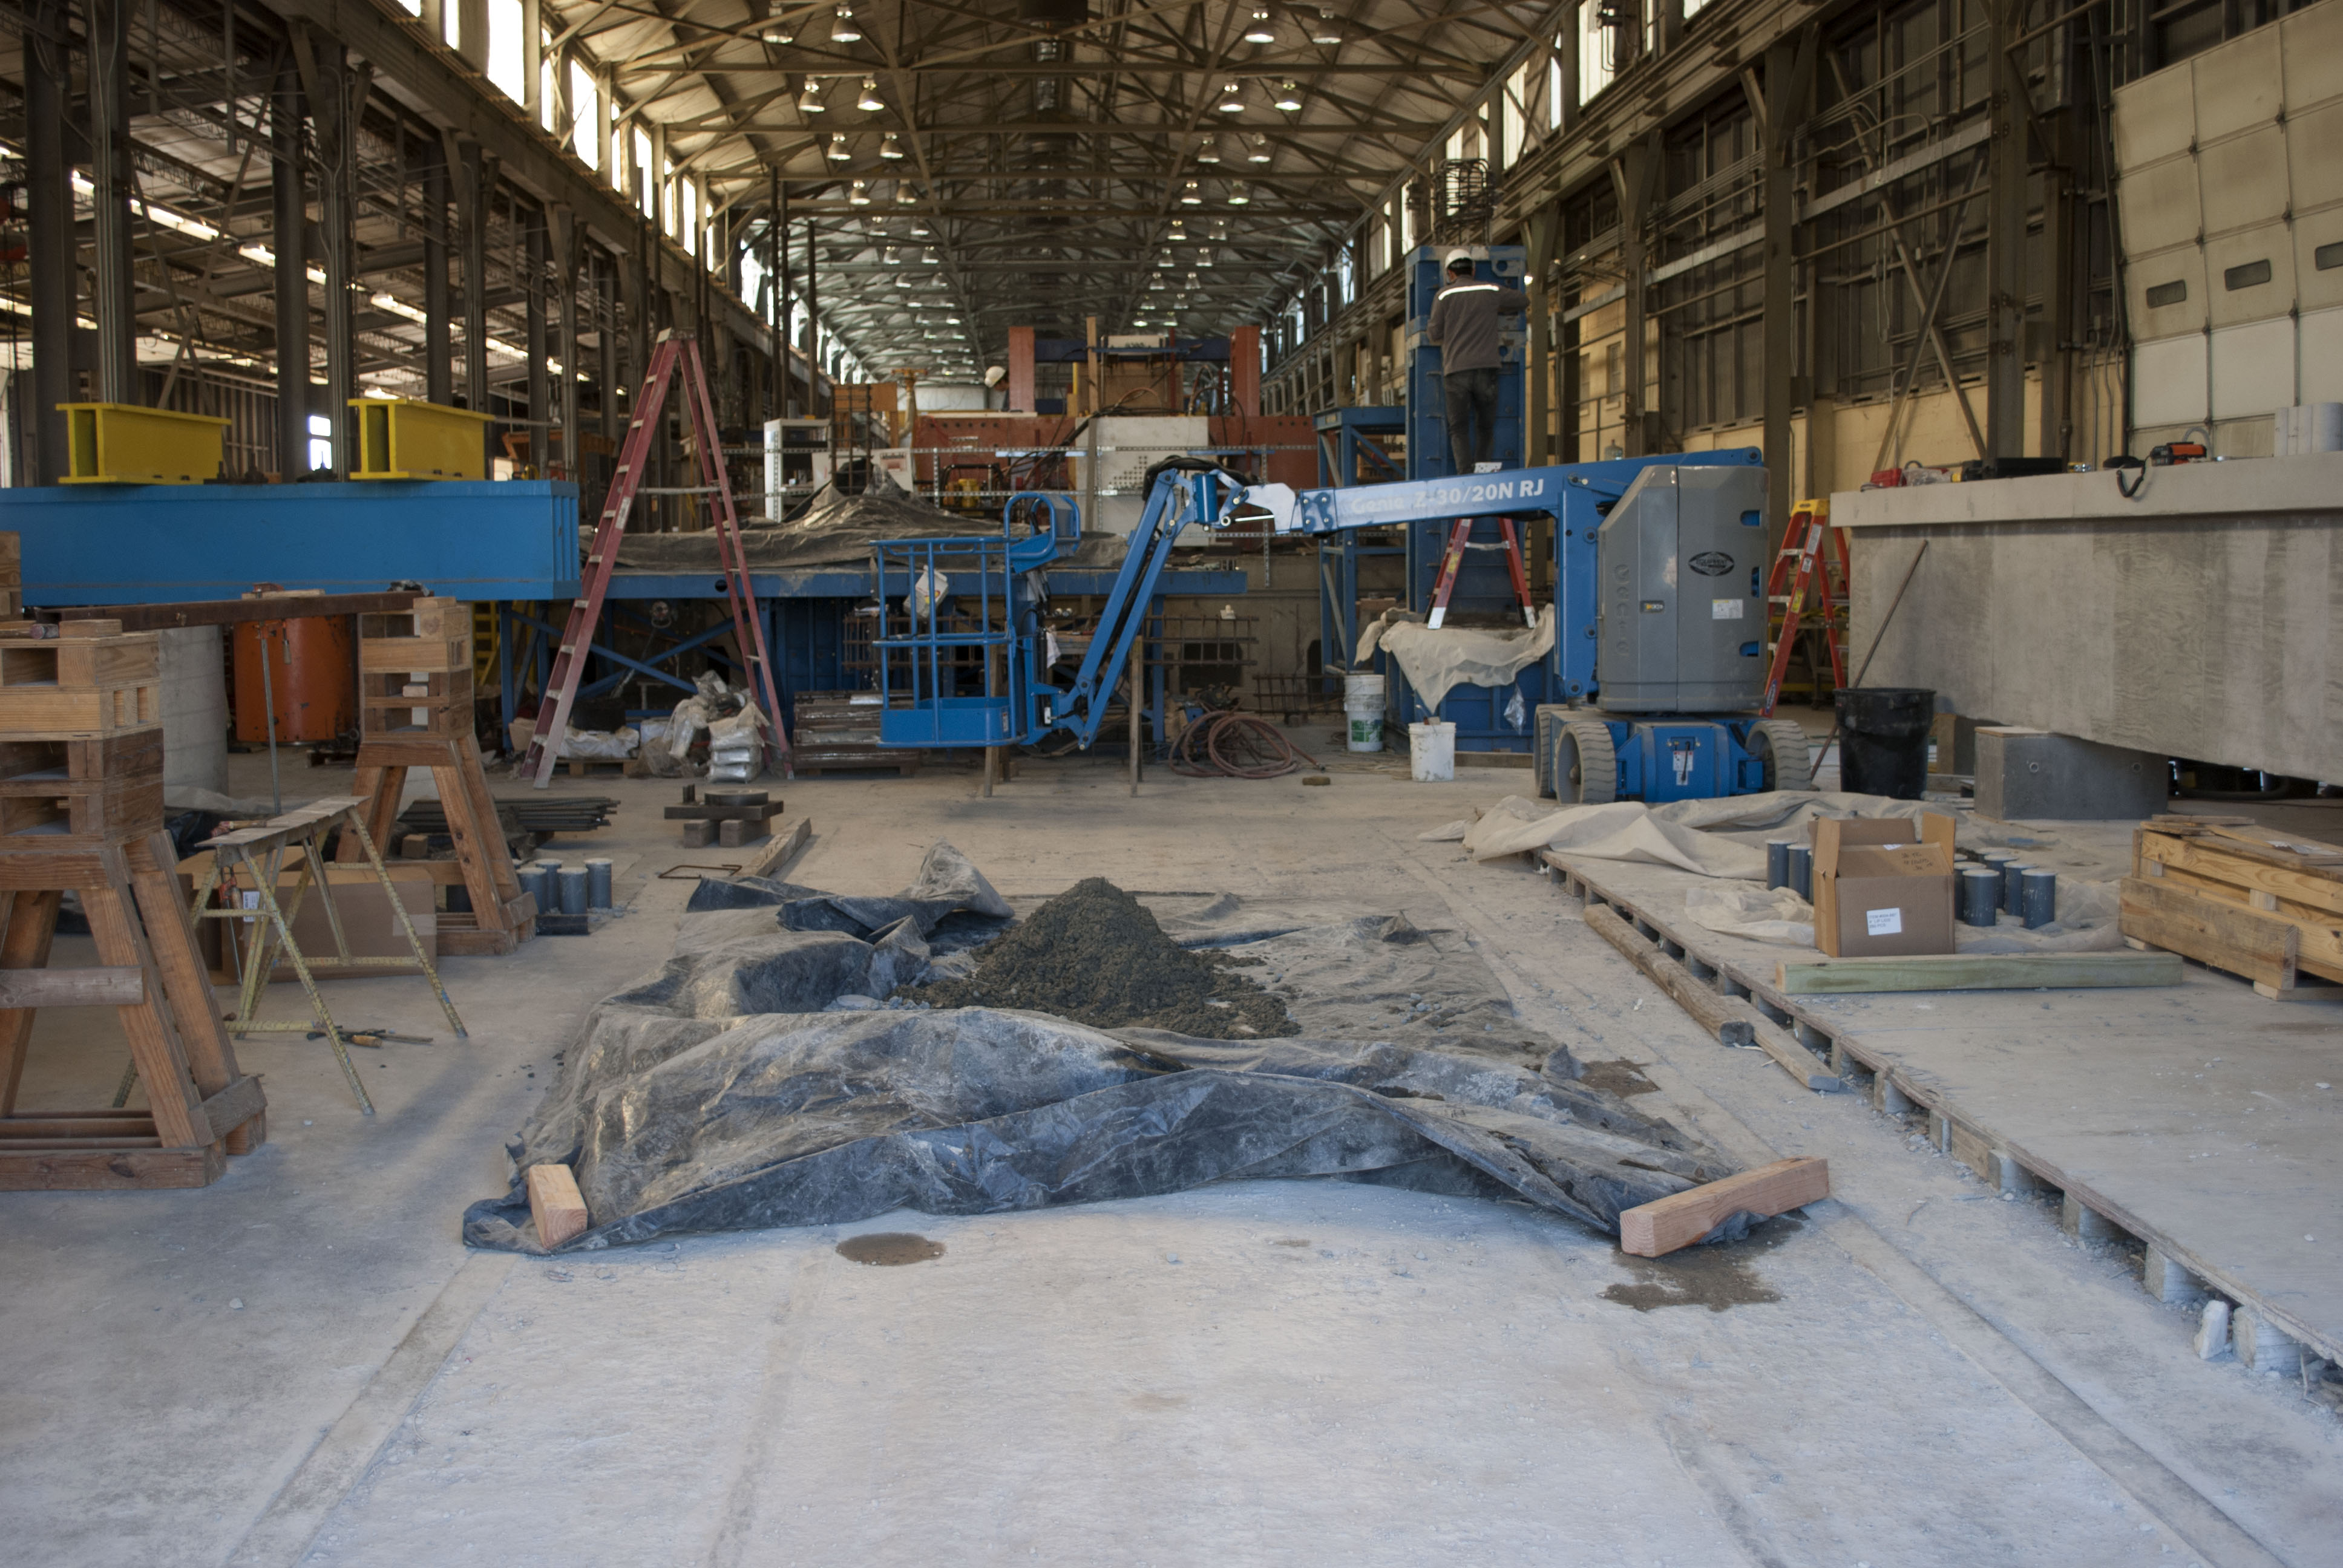 interior view of fabrication area